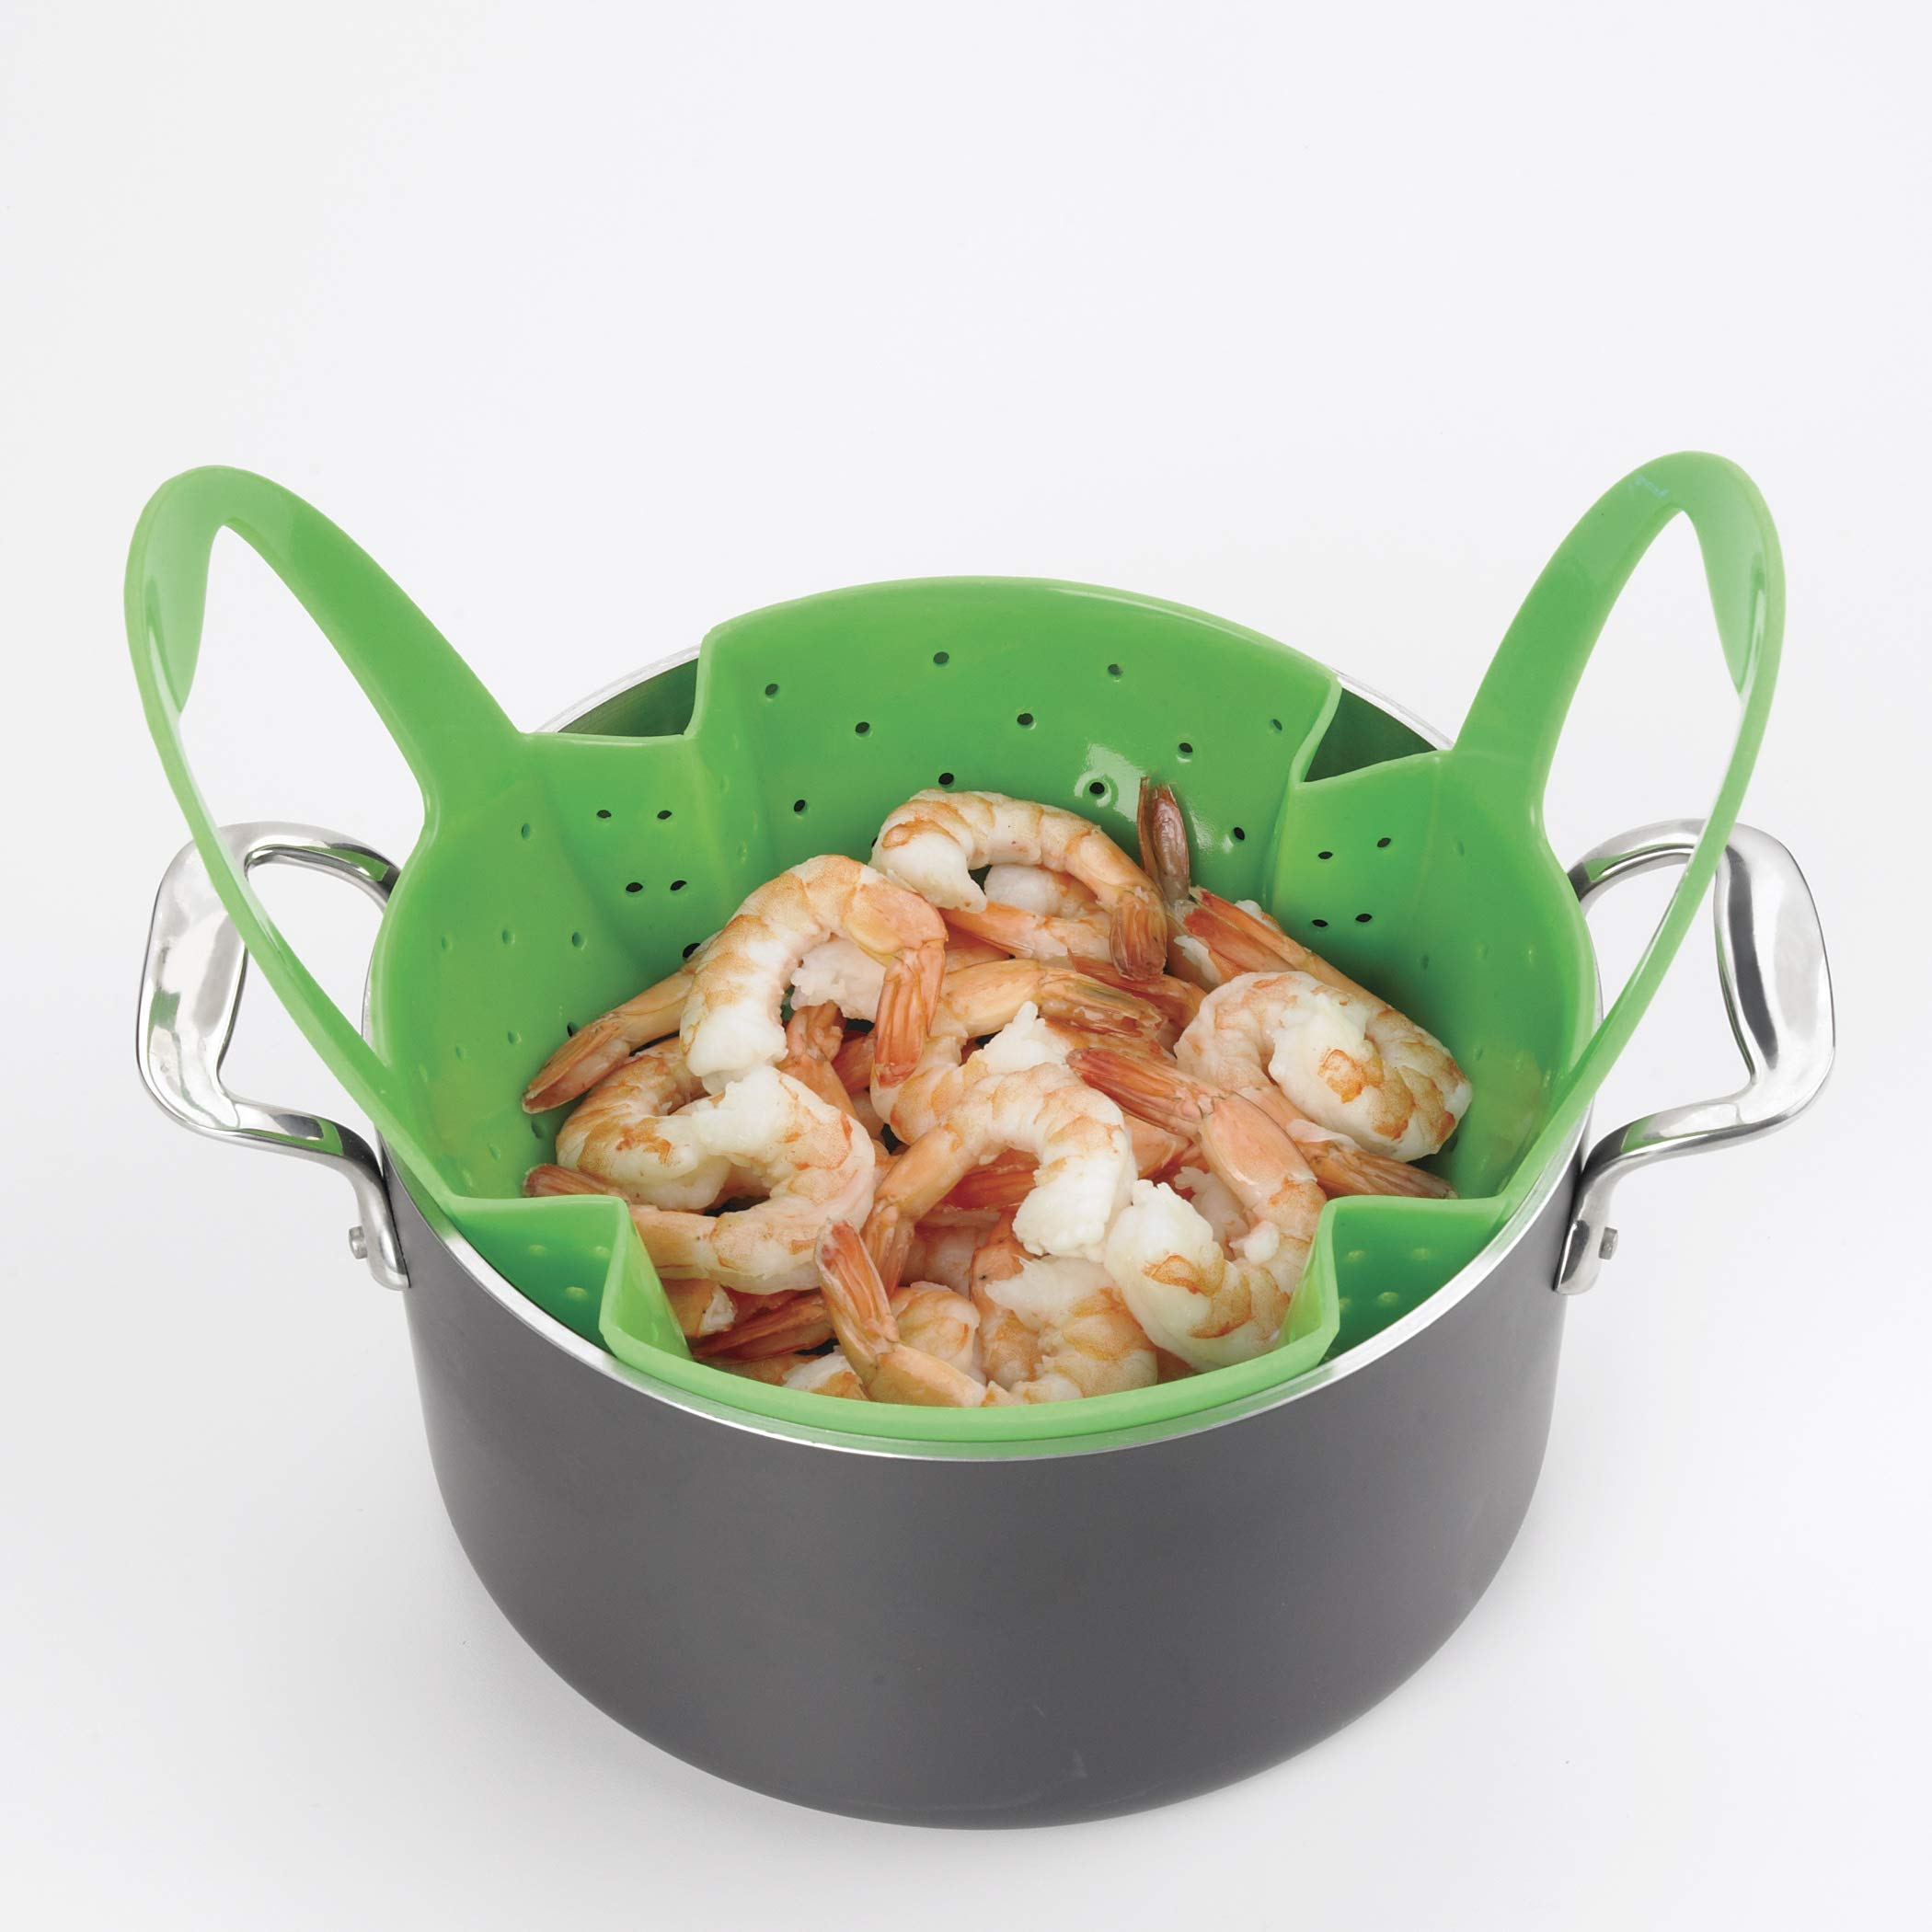 OXO Good Grips Silicone Steamer, Green by OXO (Image #9)